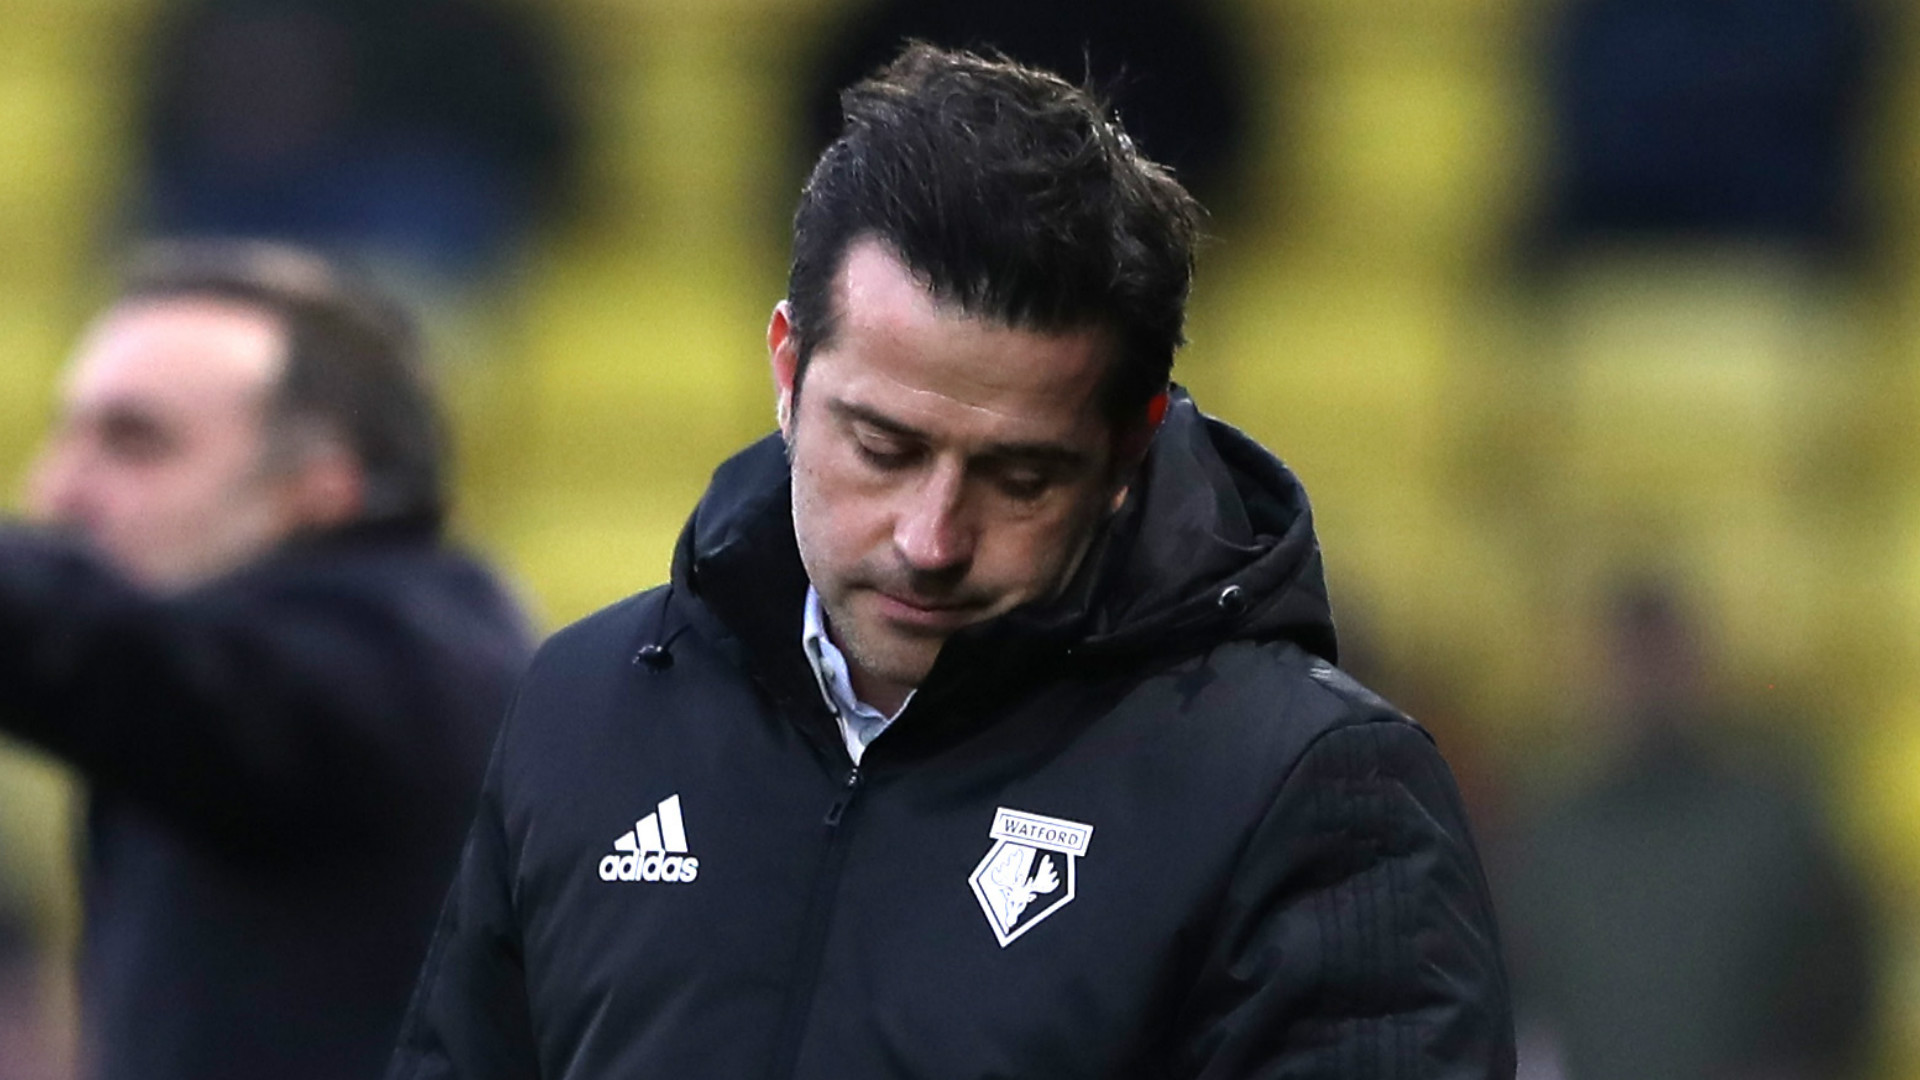 Watford sack manager Marco Silva, replace him with Javi Gracia